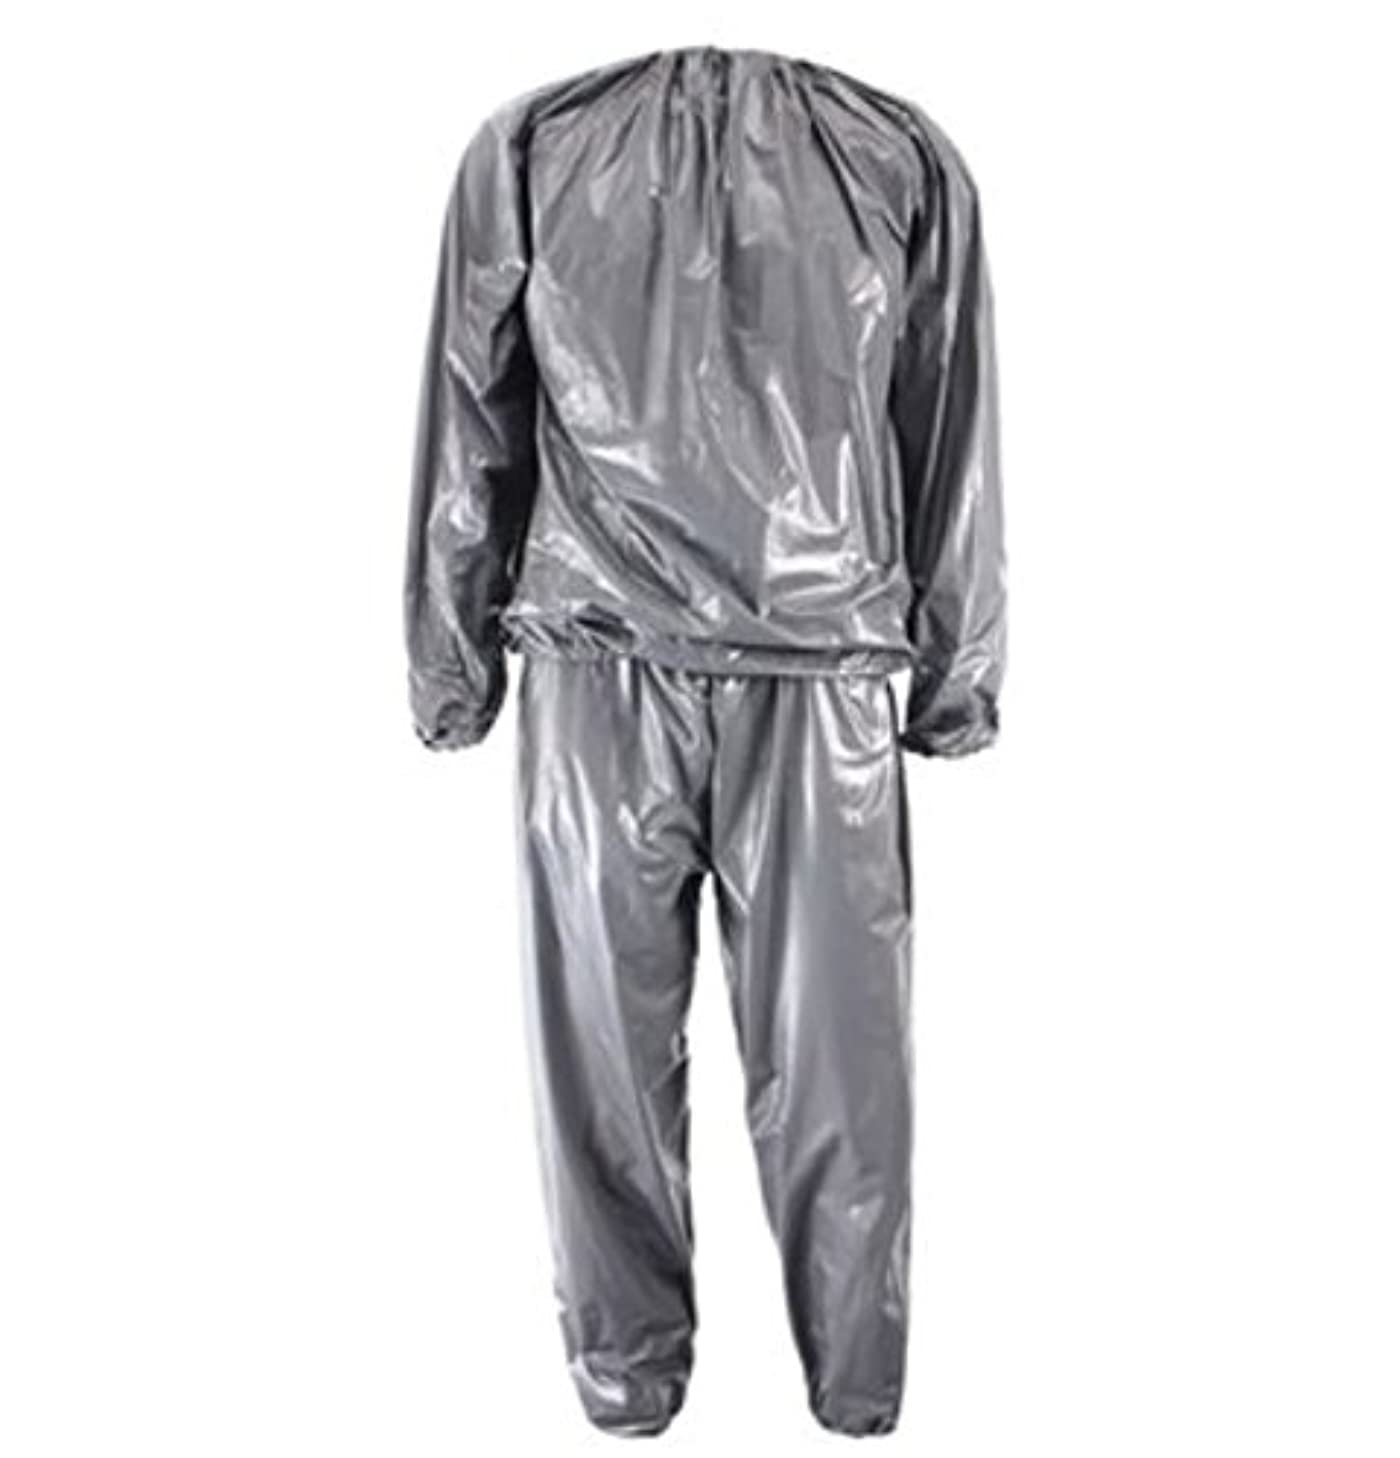 Unisex PVC Sweat Sauna Suit Cloth Lose Weight Slimming Fitness by AdvancedShop